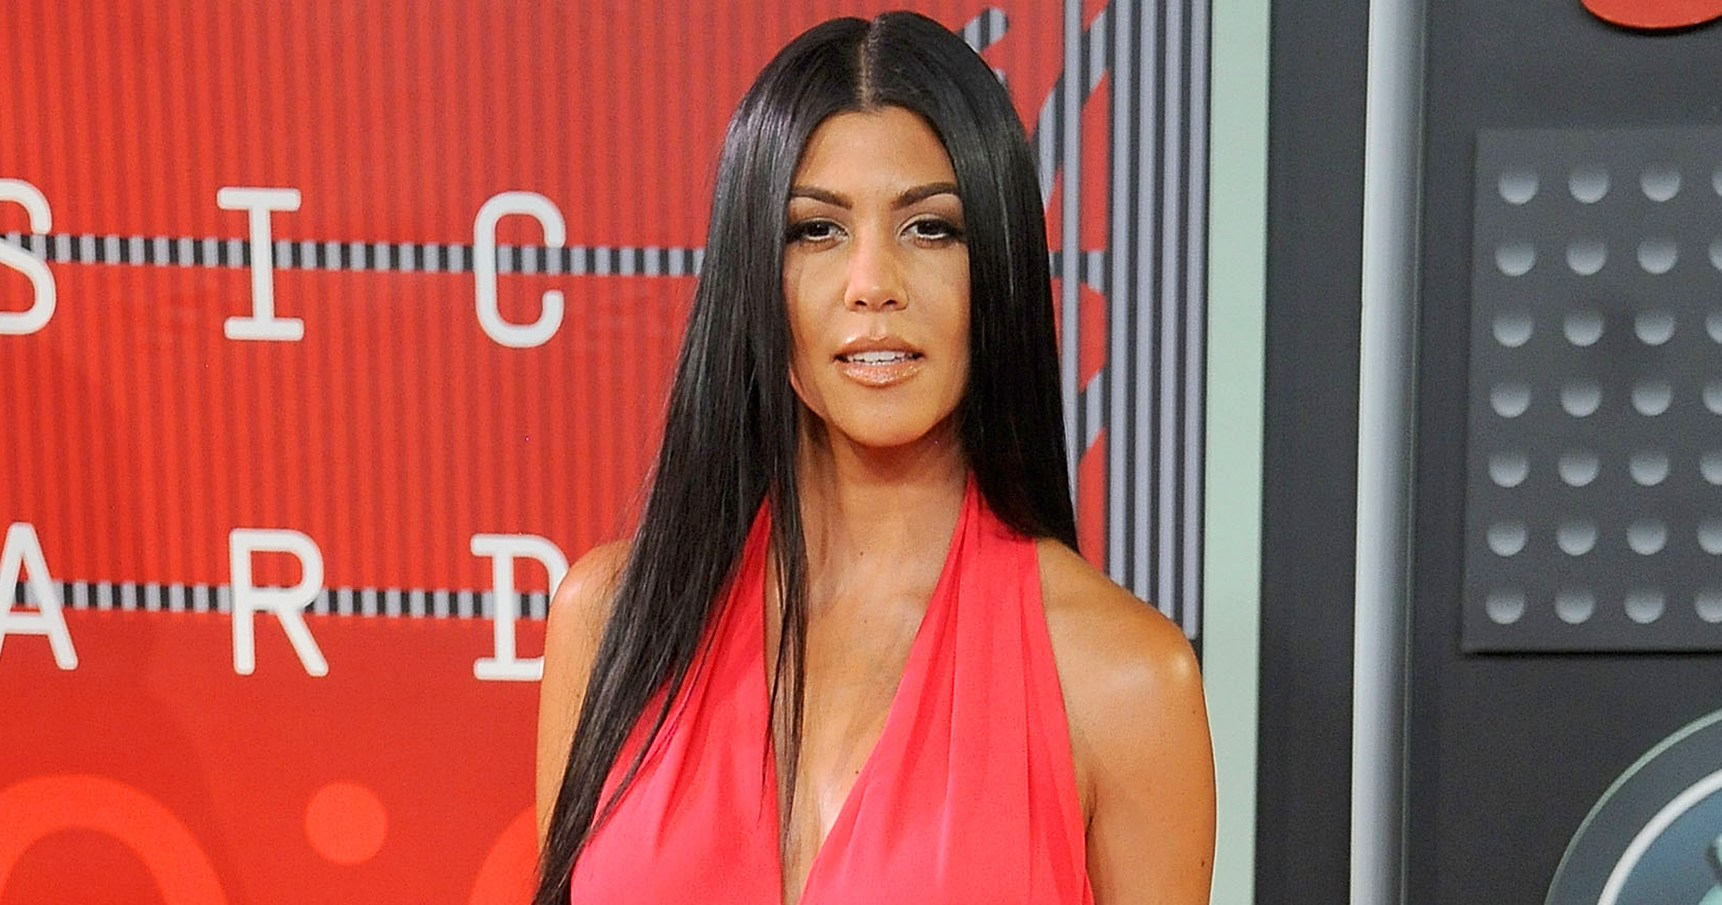 Kourtney Kardashian Reveals She's Freezing Her Eggs